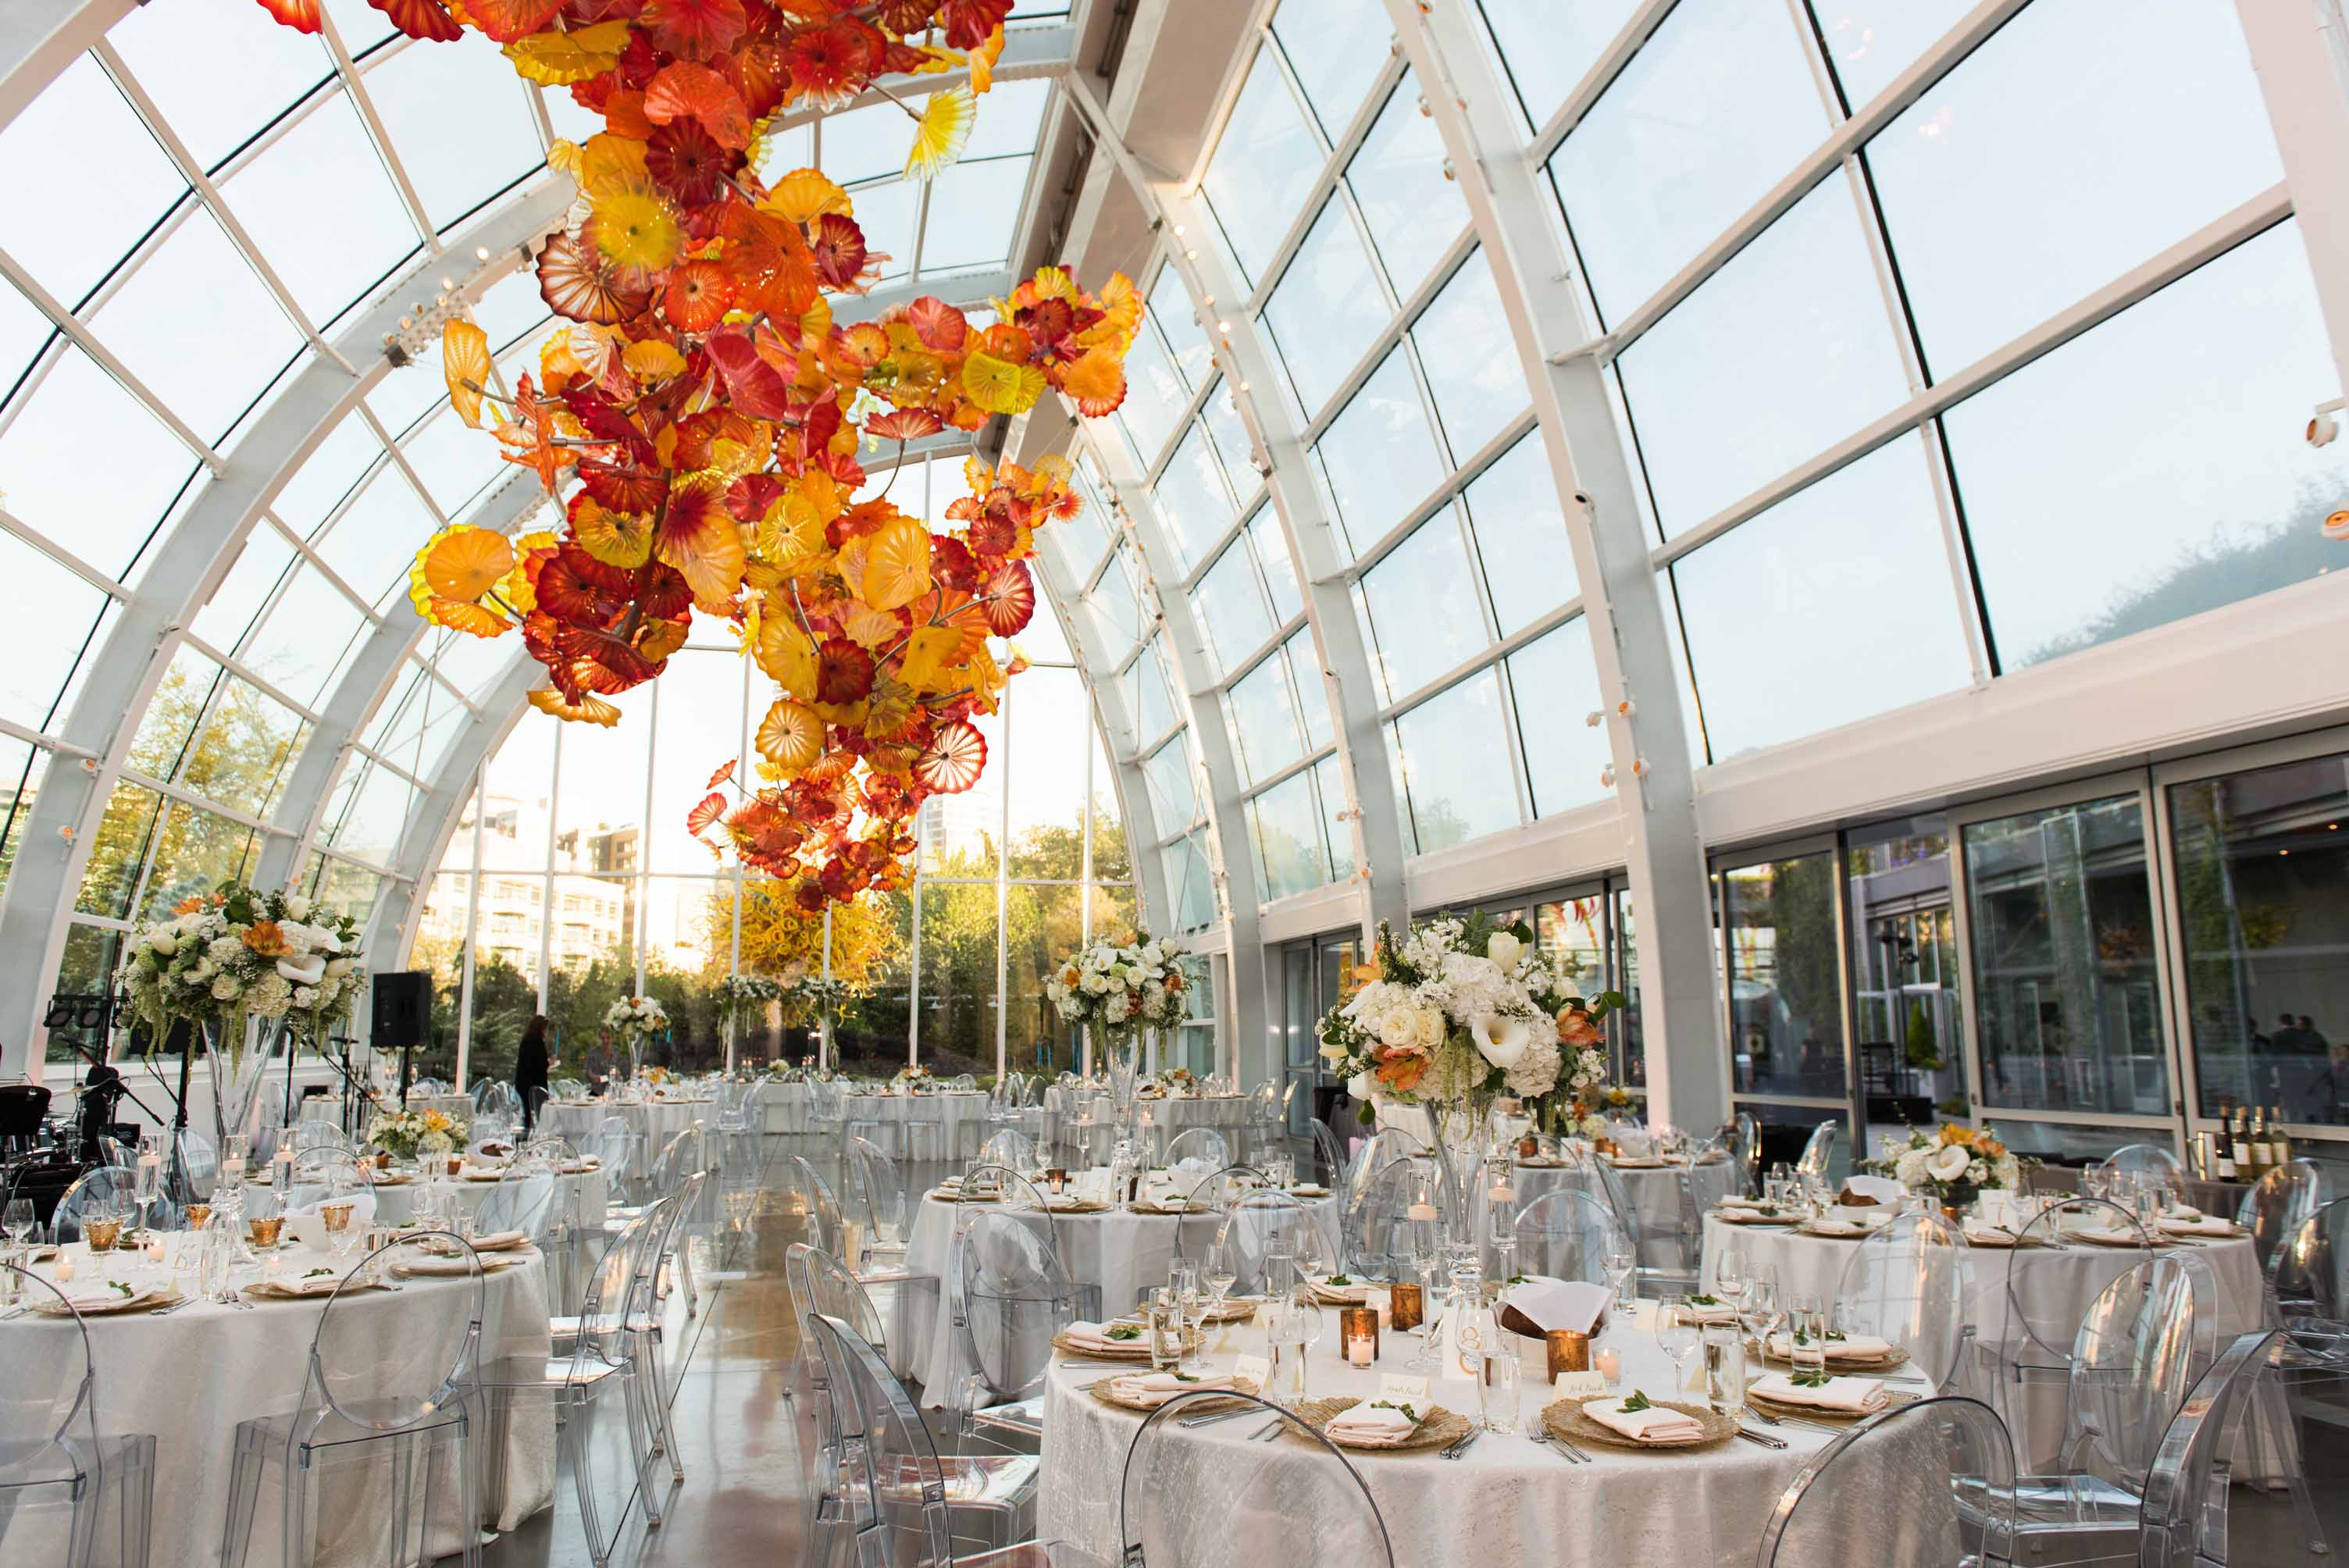 reception at Chihuly Garden and Glass wedding featuring clear ghost chairs, round tables covered in ivory silk, and large flower arrangements in orange and white - Flora Nova Design